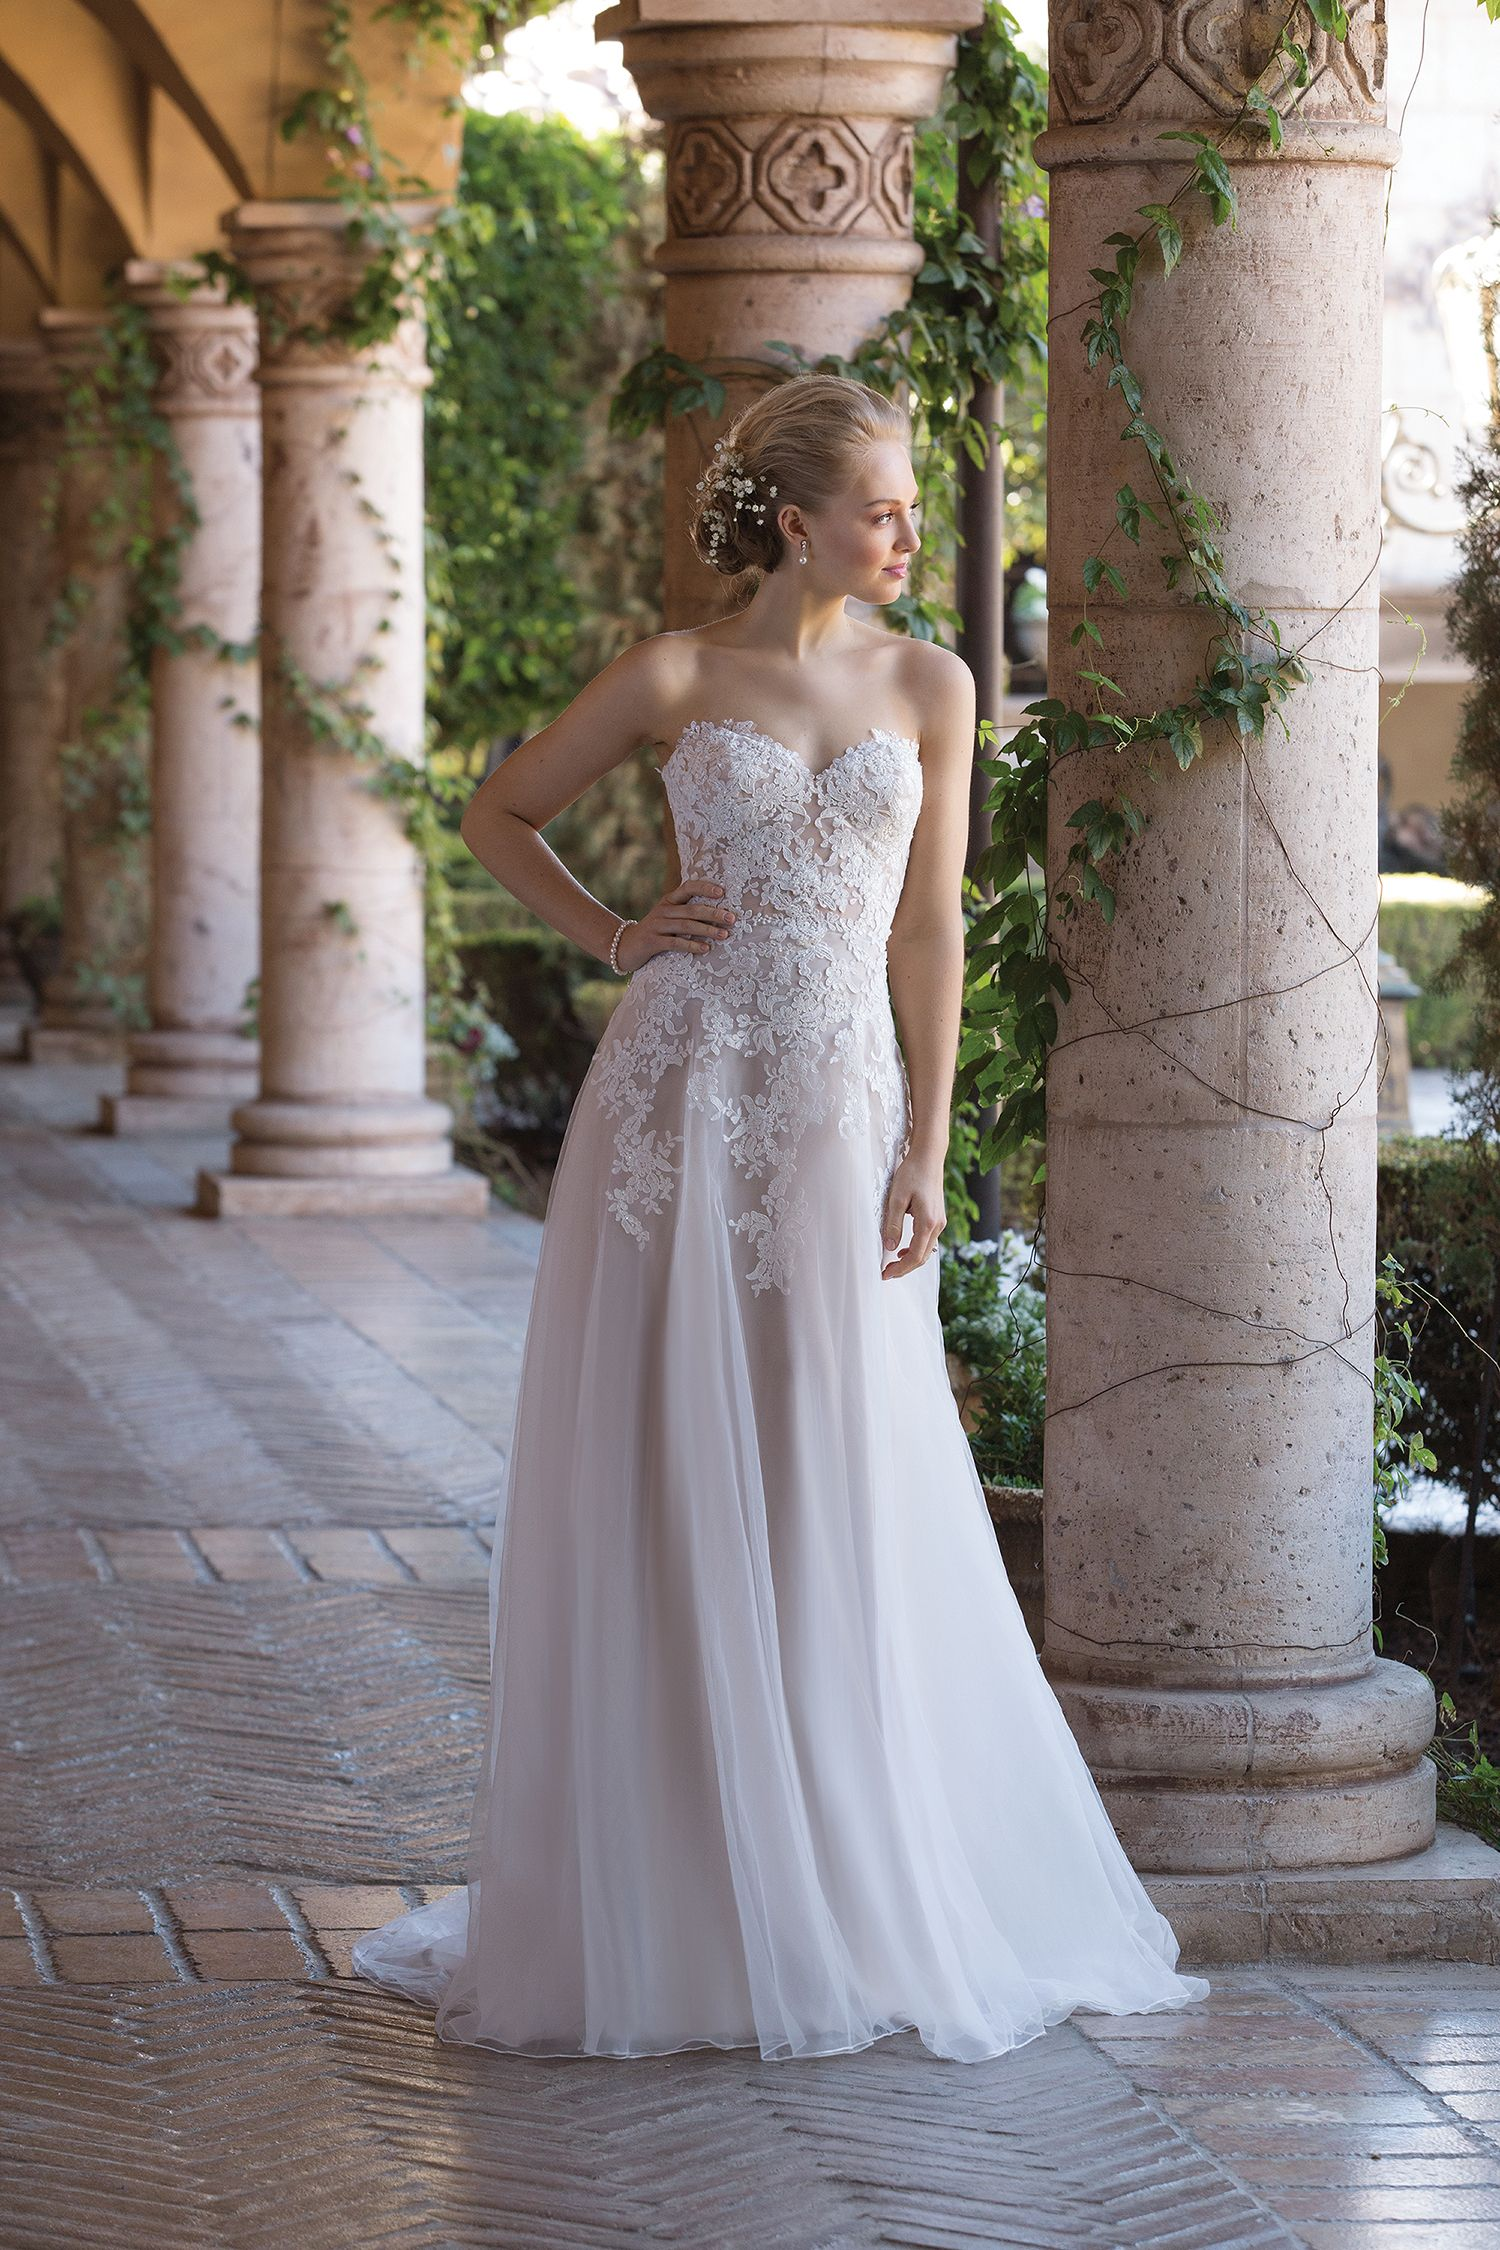 Wedding Dresses By Sincerity Bridal 4026 Collection S Silhouette Aline Neckline Sweetheart Long Without Sleeves: S Bells Wedding Dress At Reisefeber.org